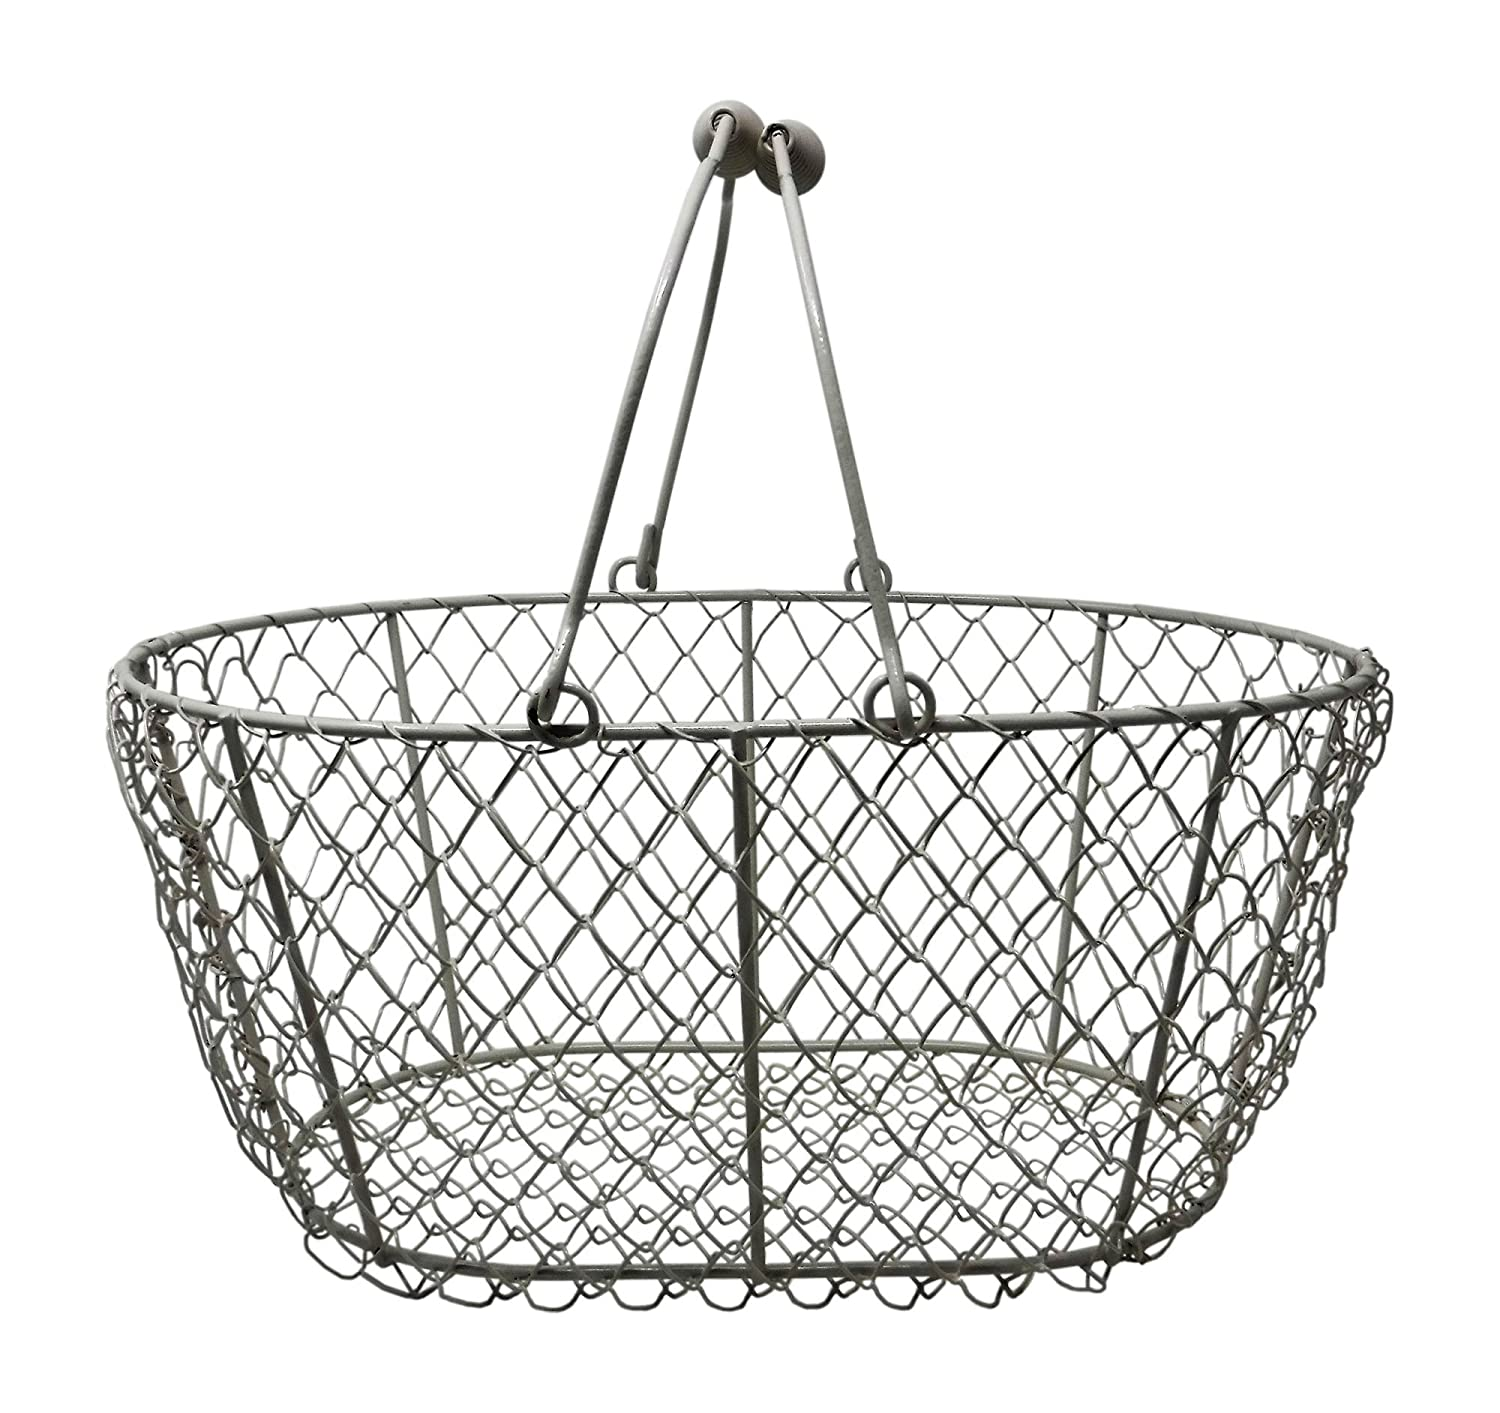 Amazon.com : Wire Egg Basket, Chicken Egg Gathering Basket, Vintage ...